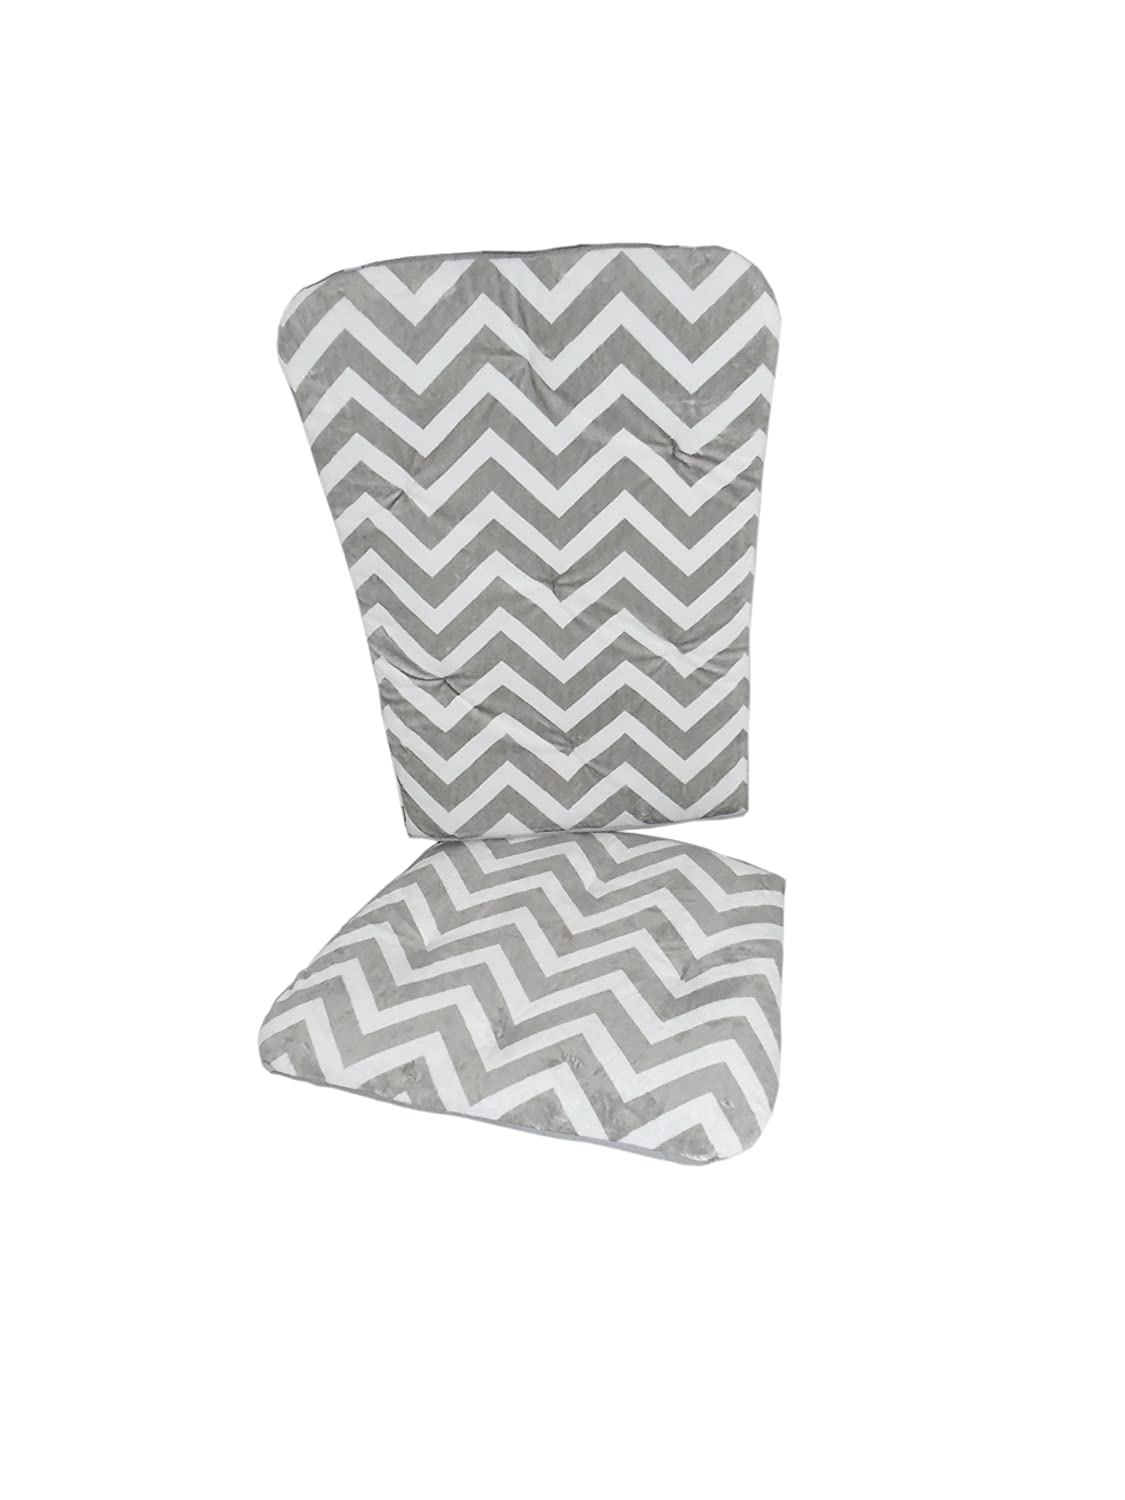 Baby Doll Bedding Minky Bargain Chevron Grey Pad Chair Complete Free Shipping Rocking